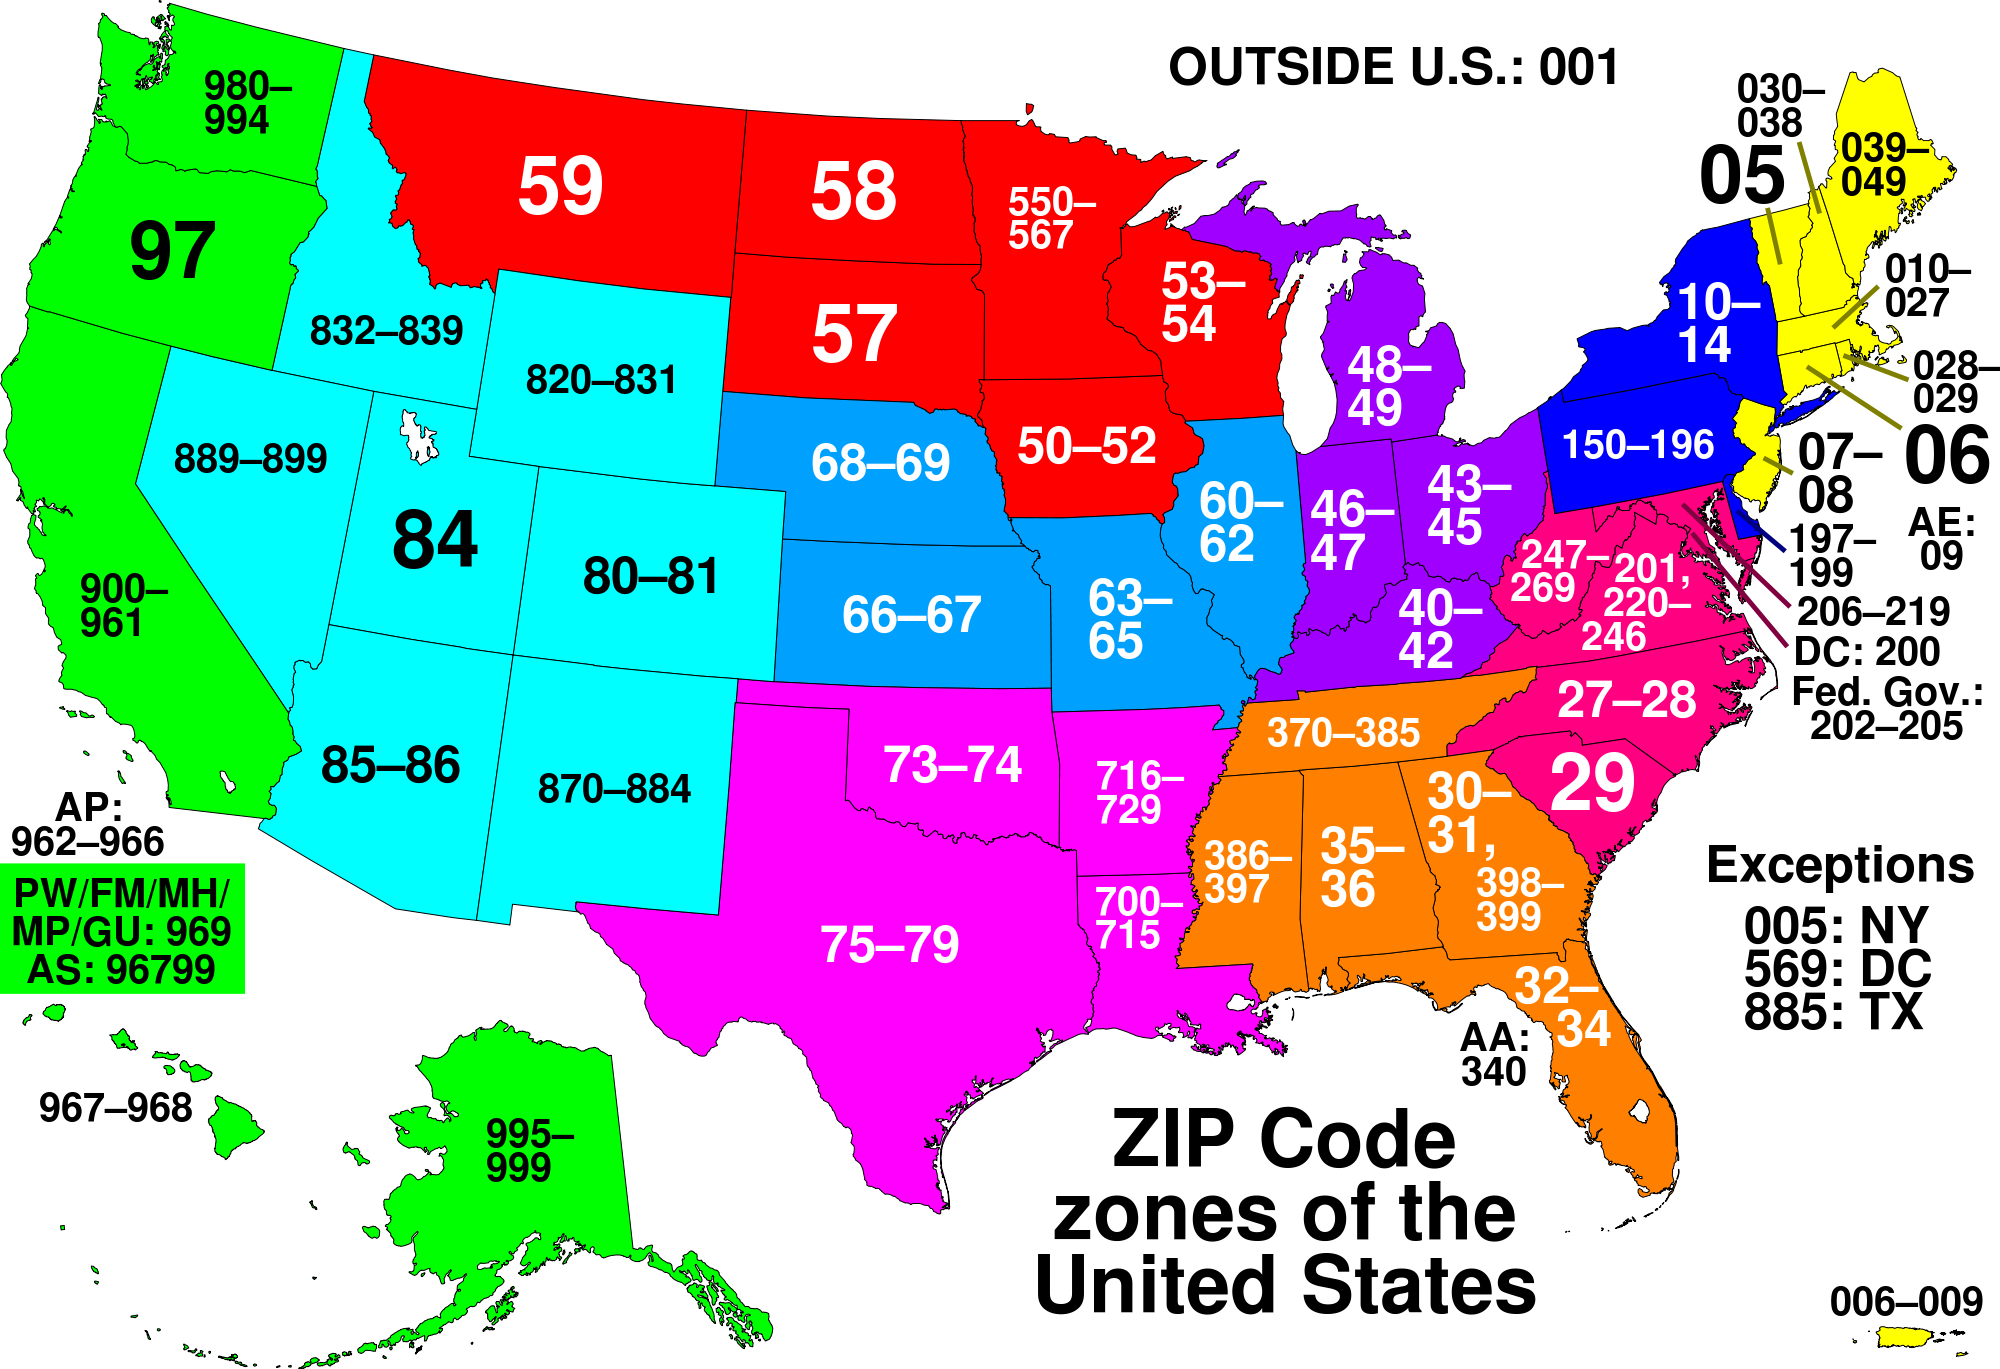 ZIP Codes Are A System Of Postal Codes Used By The United States - Map of the postal abreviations for the us